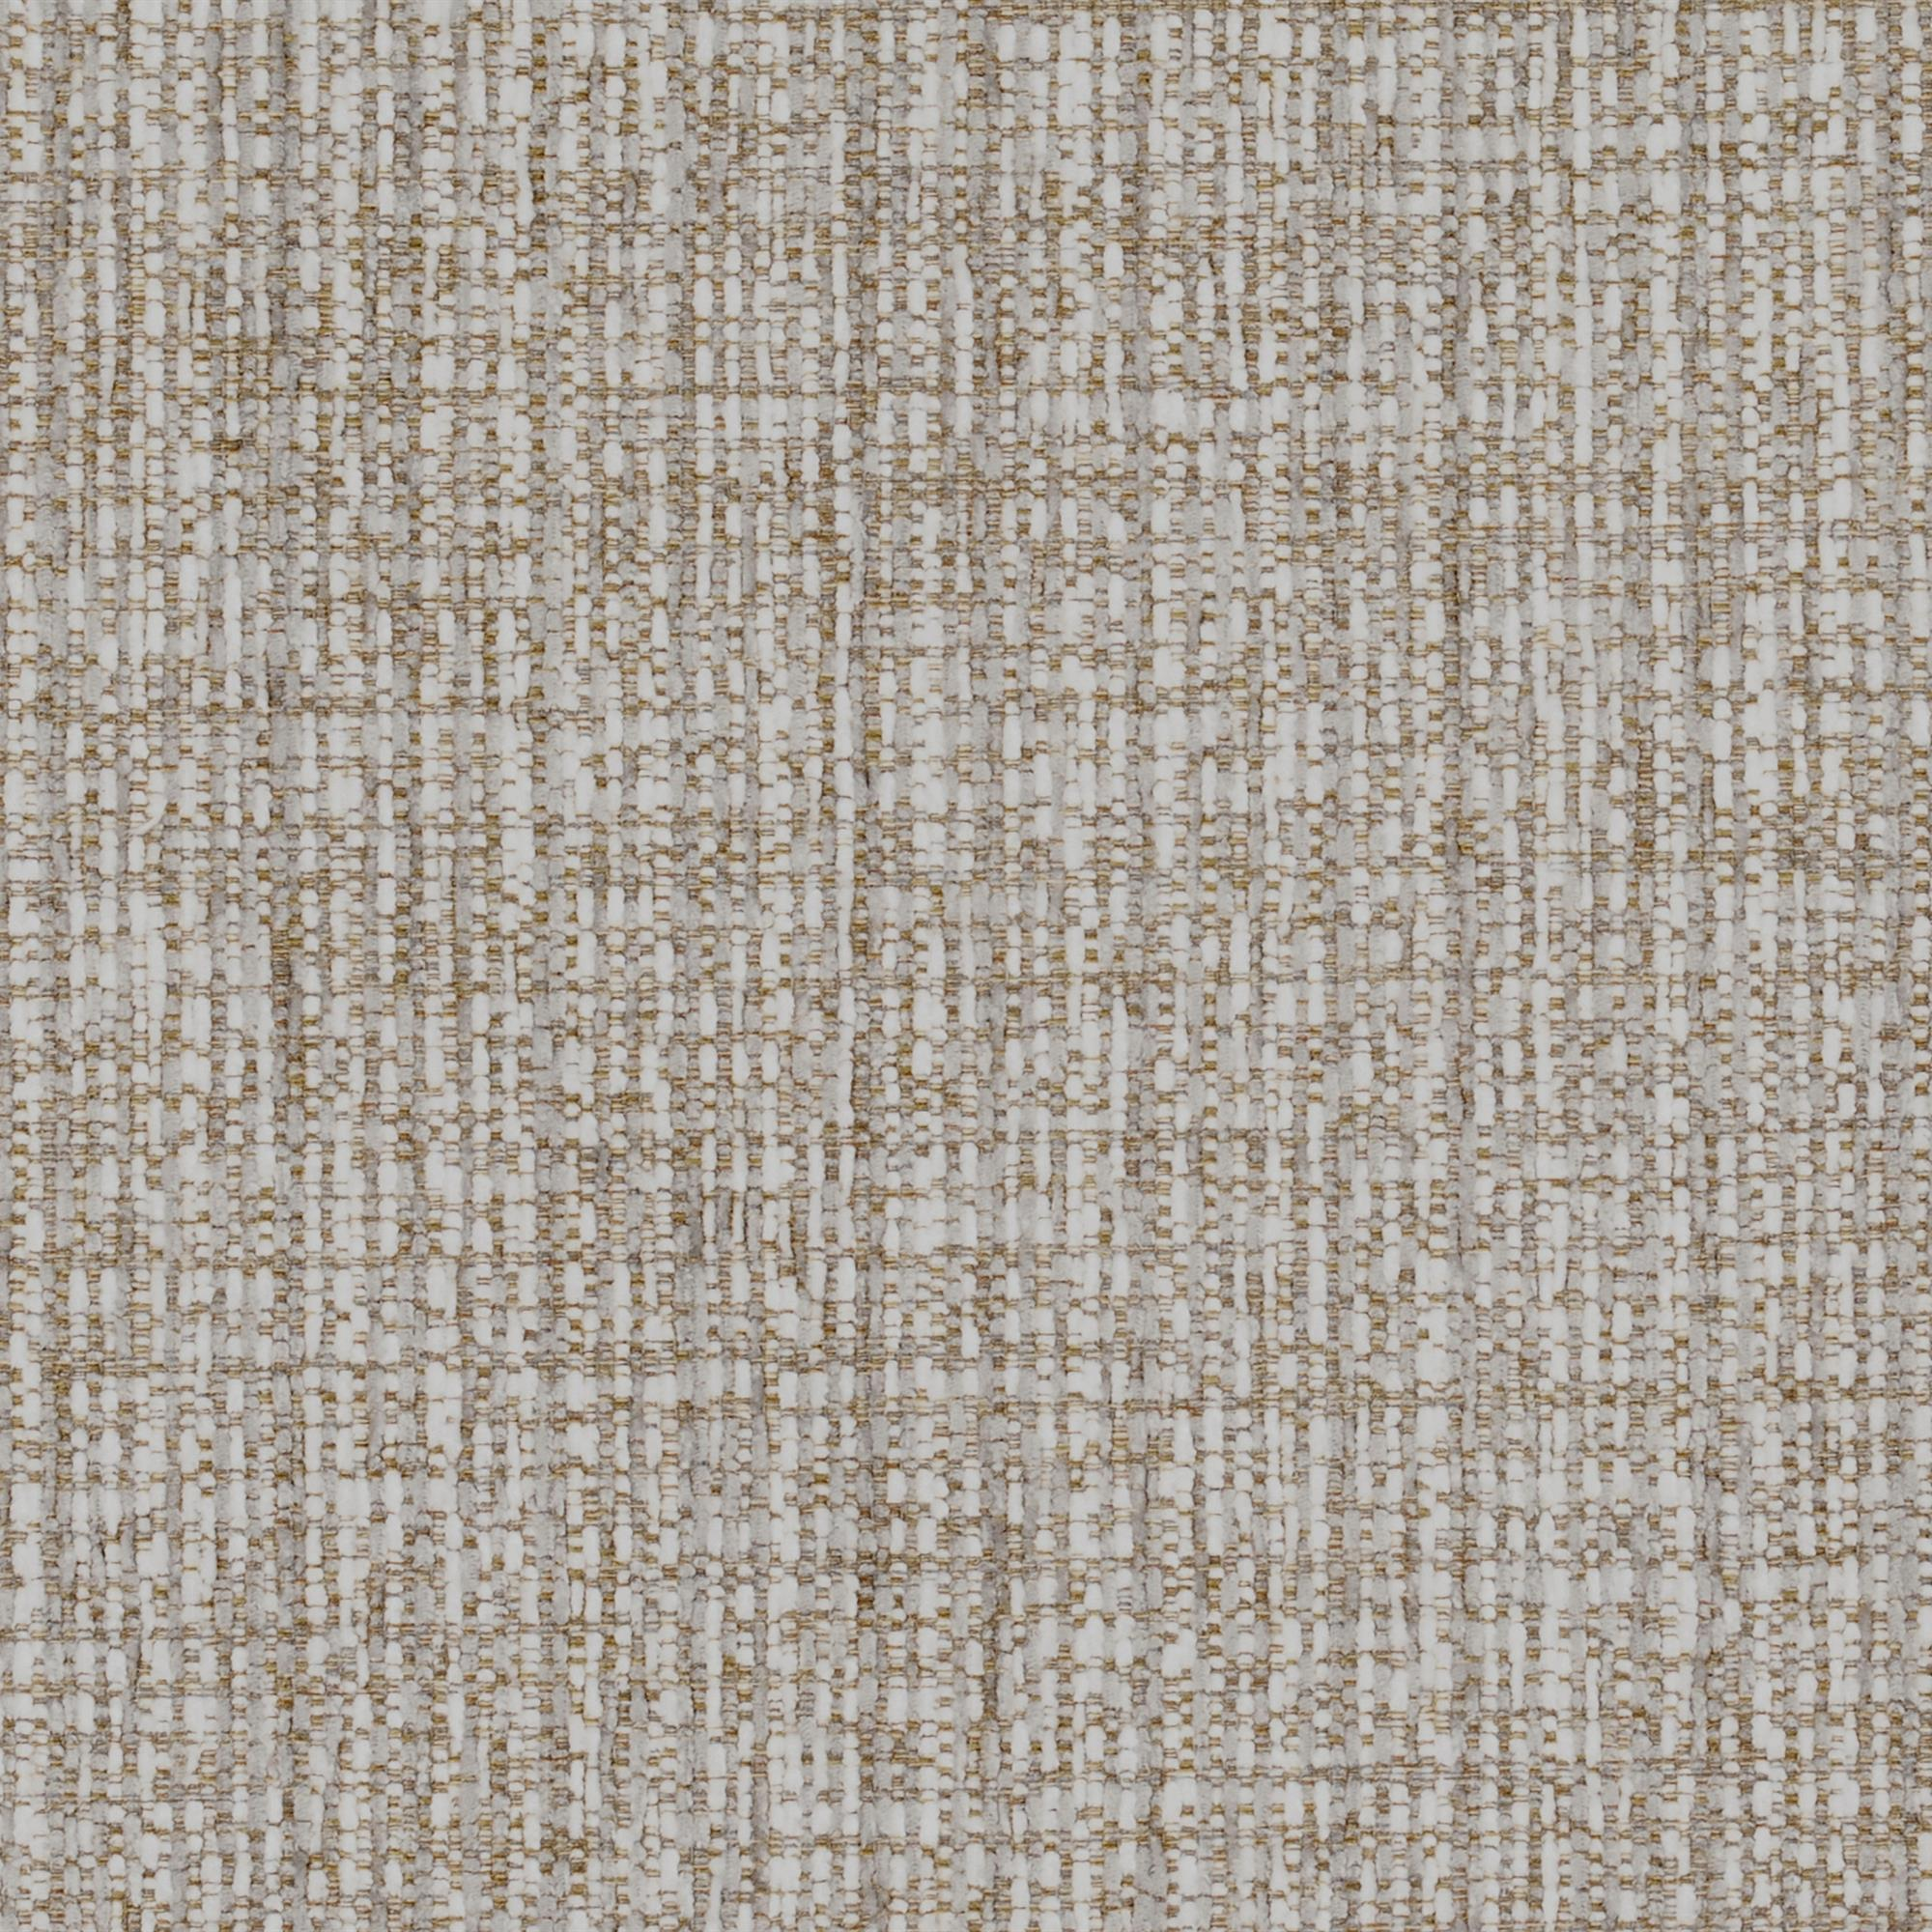 G Plan Stanton Scatter Cushion Piped, W002 Loom Shale, swatch